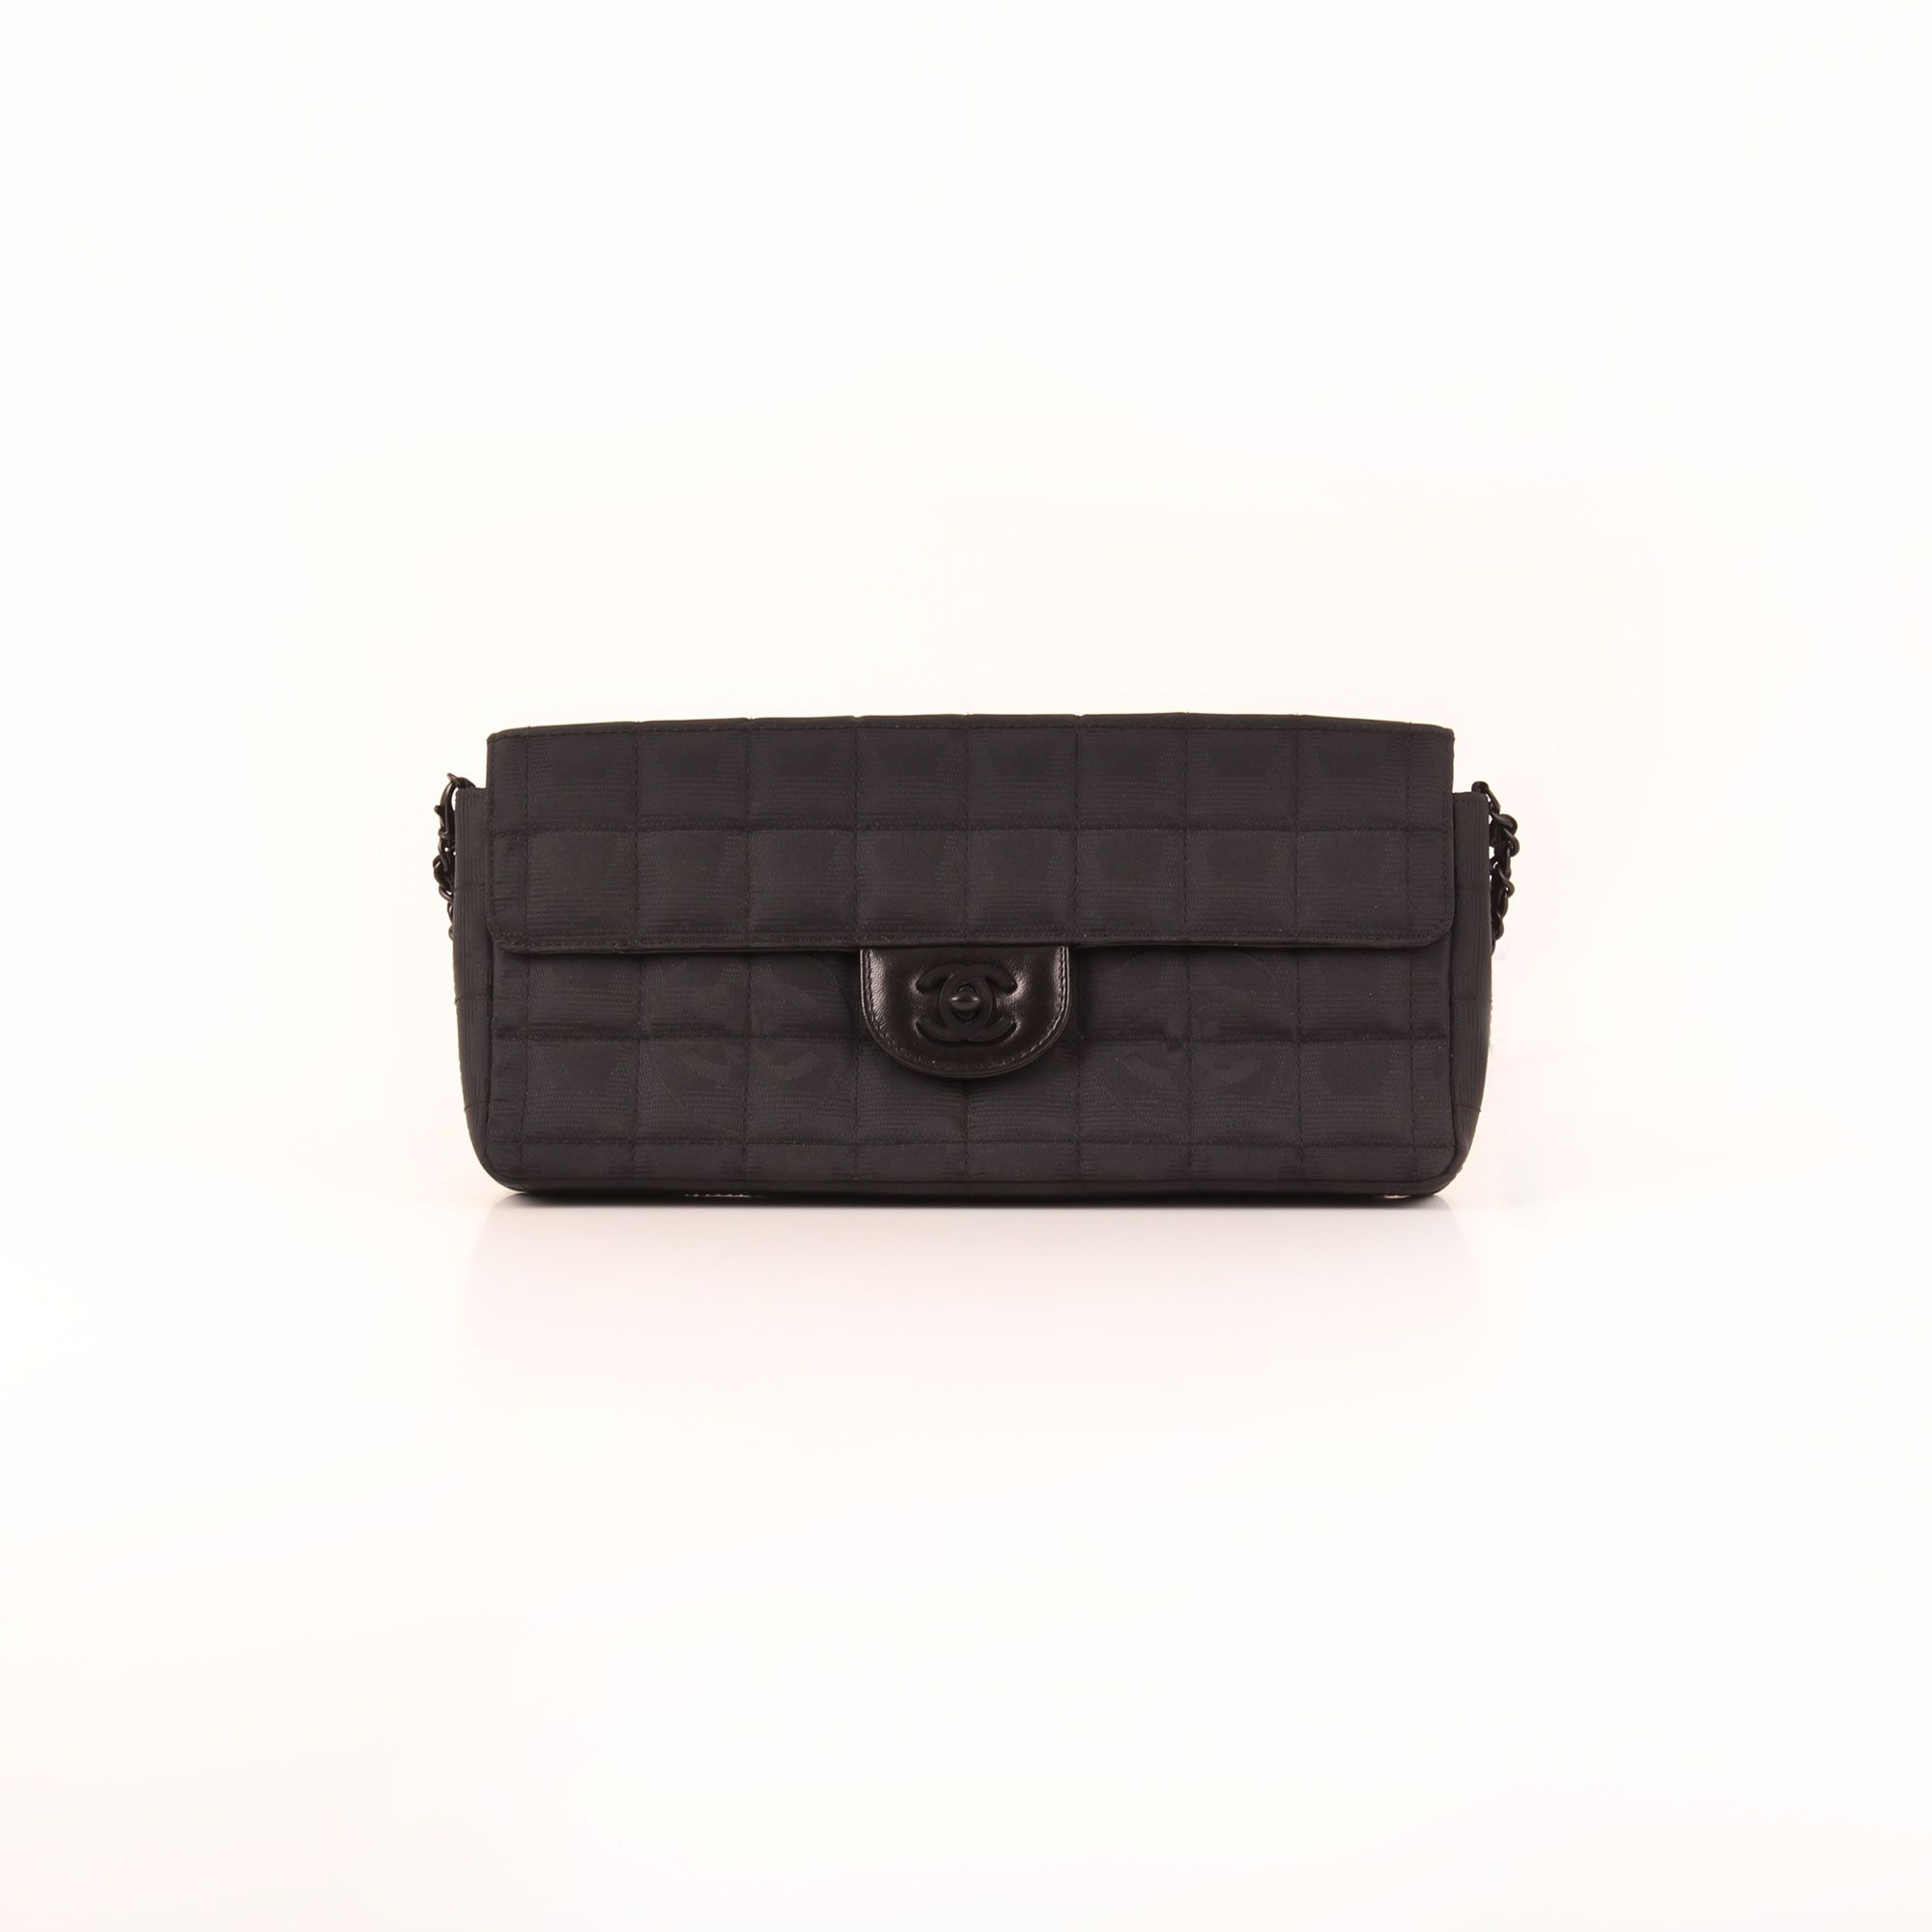 1db0b38045d5 Travel Line East West Flap Black I CBL Bags | Chanel | Bags, Chanel ...